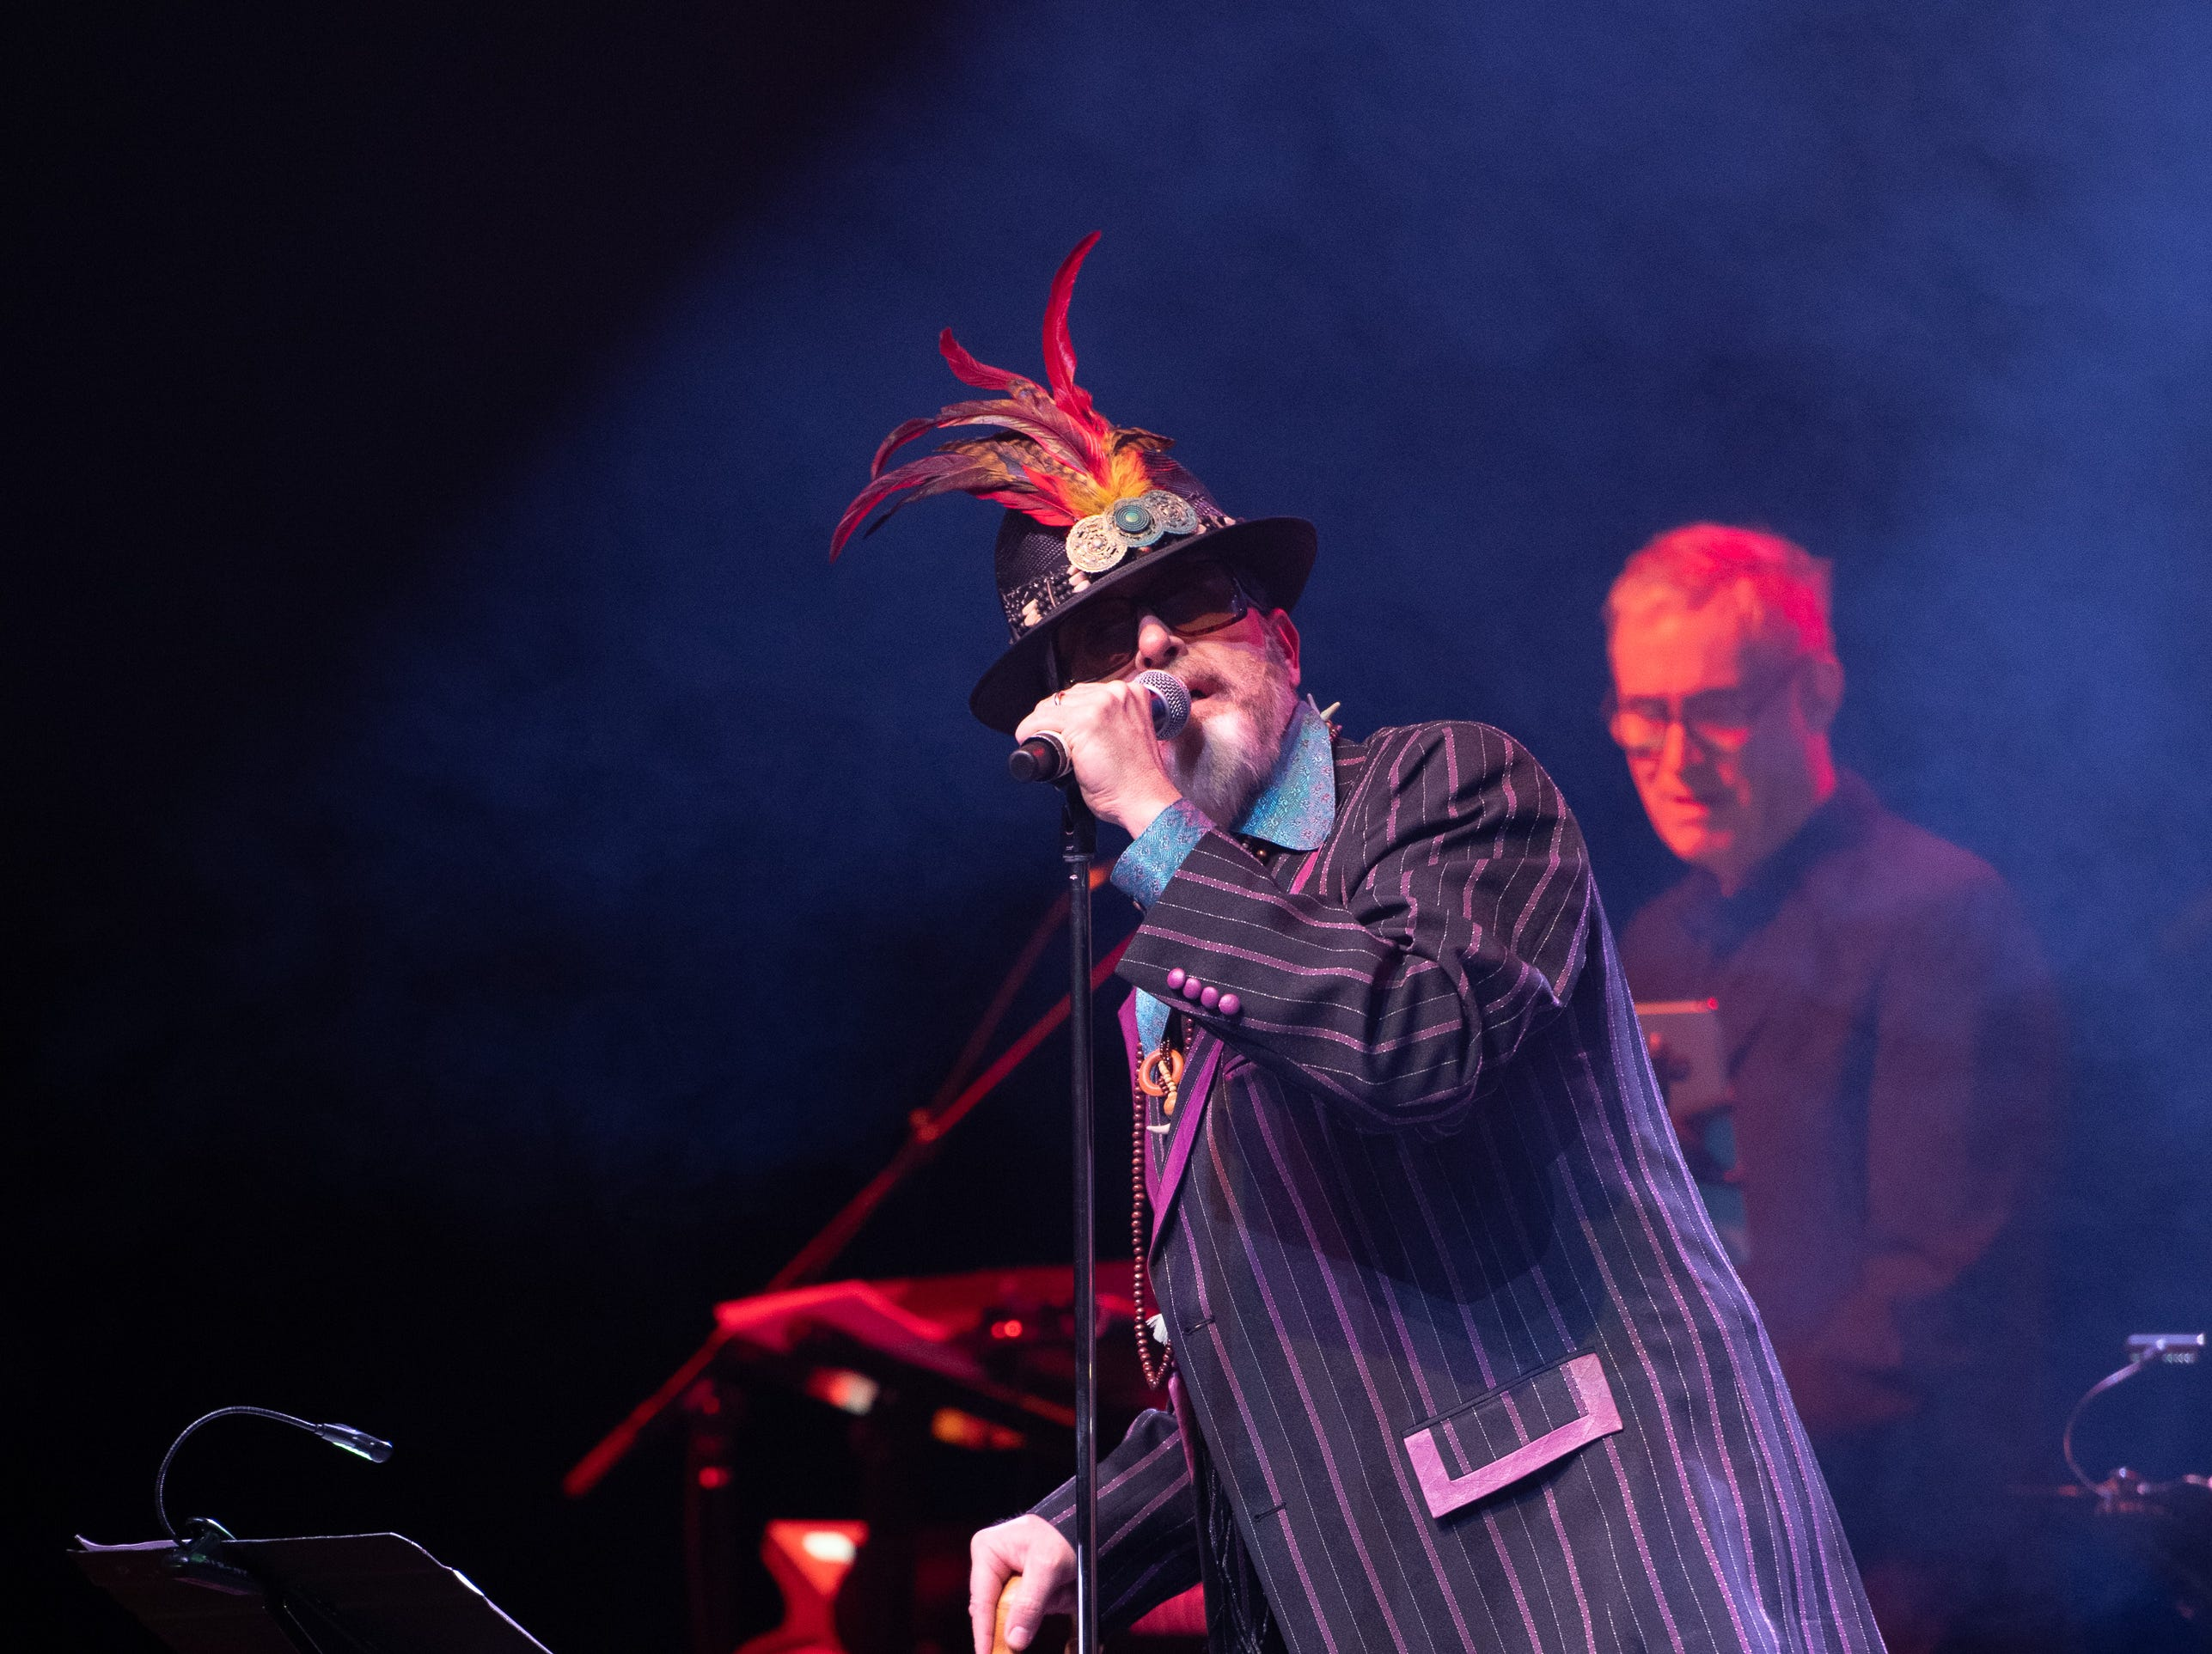 """Stephen Colbert sings Dr. John's R & B classic, """"Right Place, Wrong Time"""" at the Dance Floor Celebration Of Soul, R&B And Funk at The Wellmont Theatre, a benefit for Montclair Film Festival. March, 2019."""